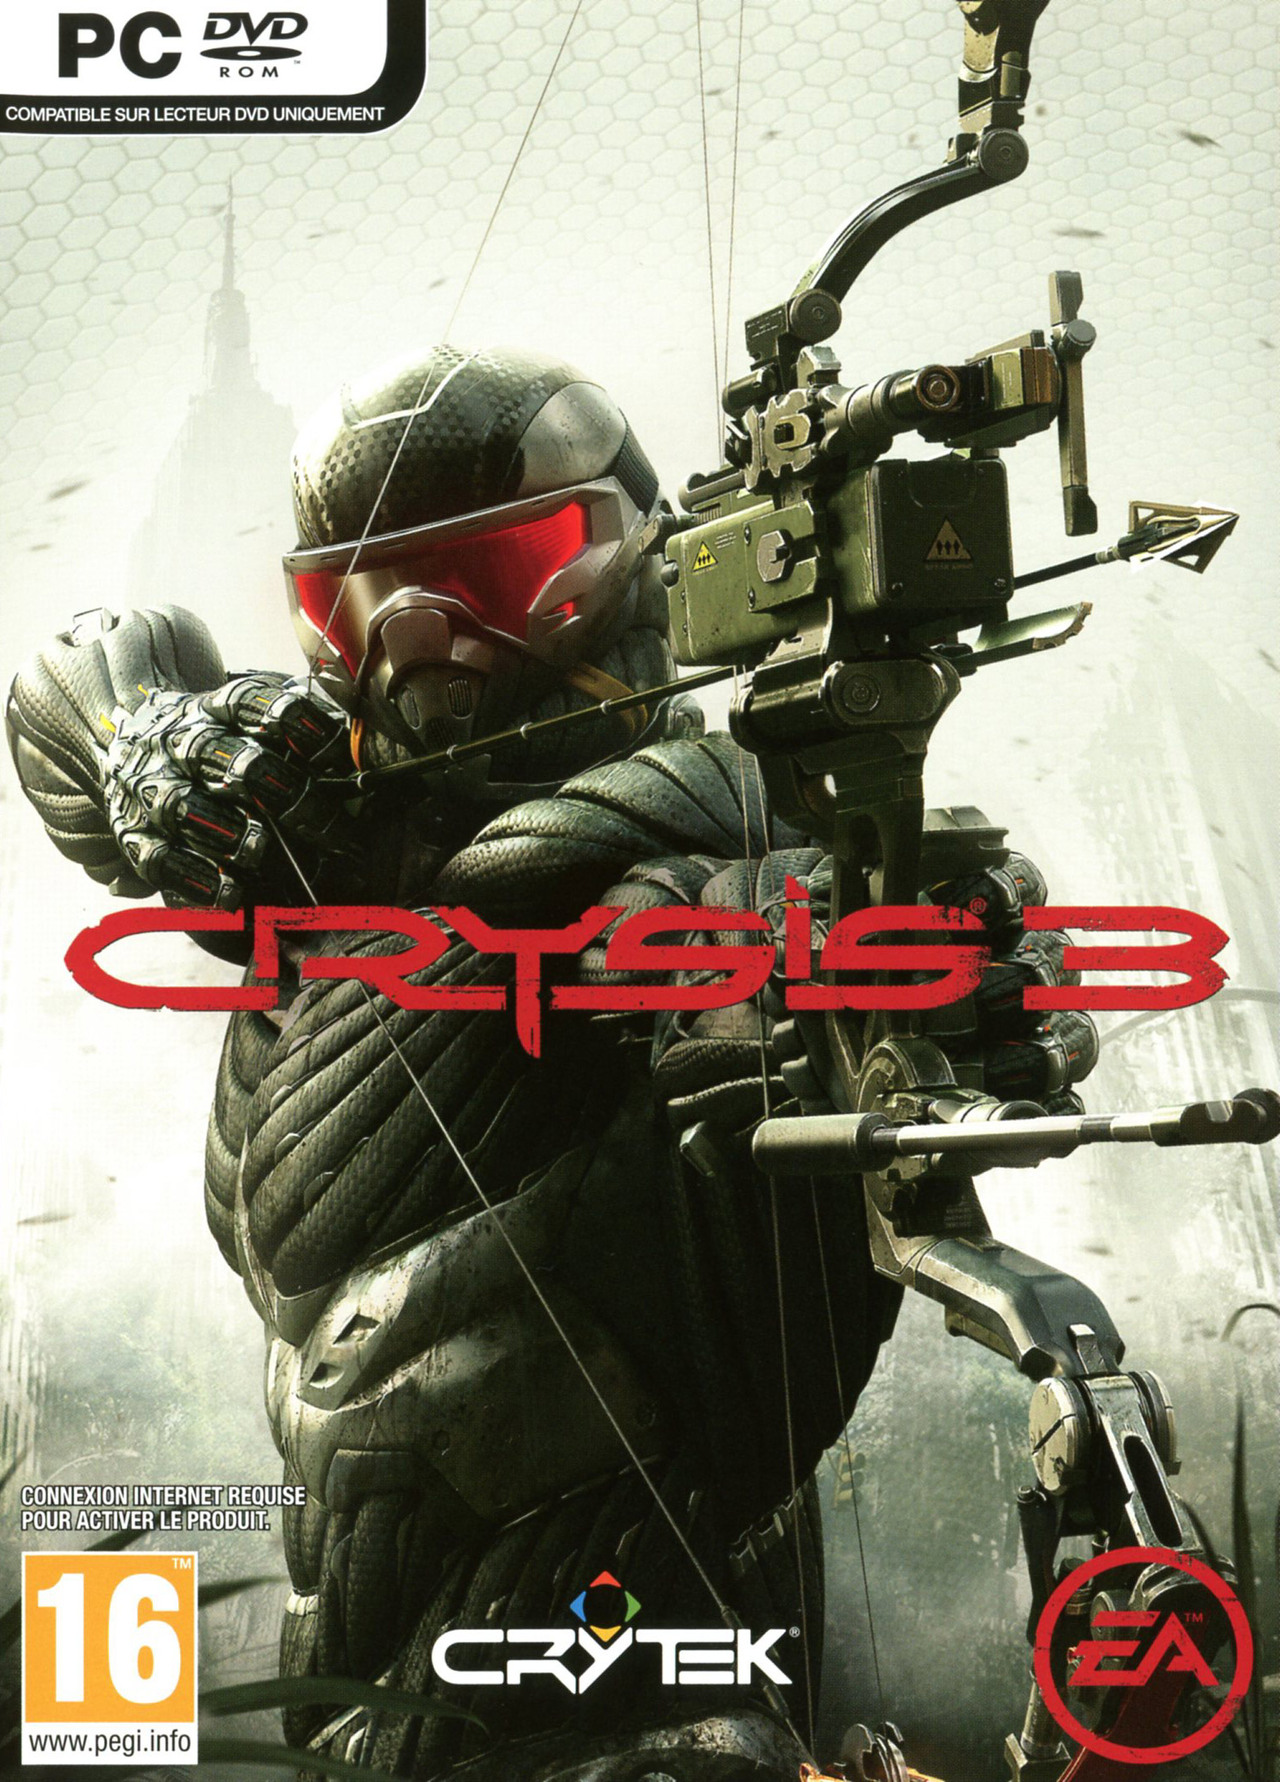 Crysis 3 Update v1.1 [PC]